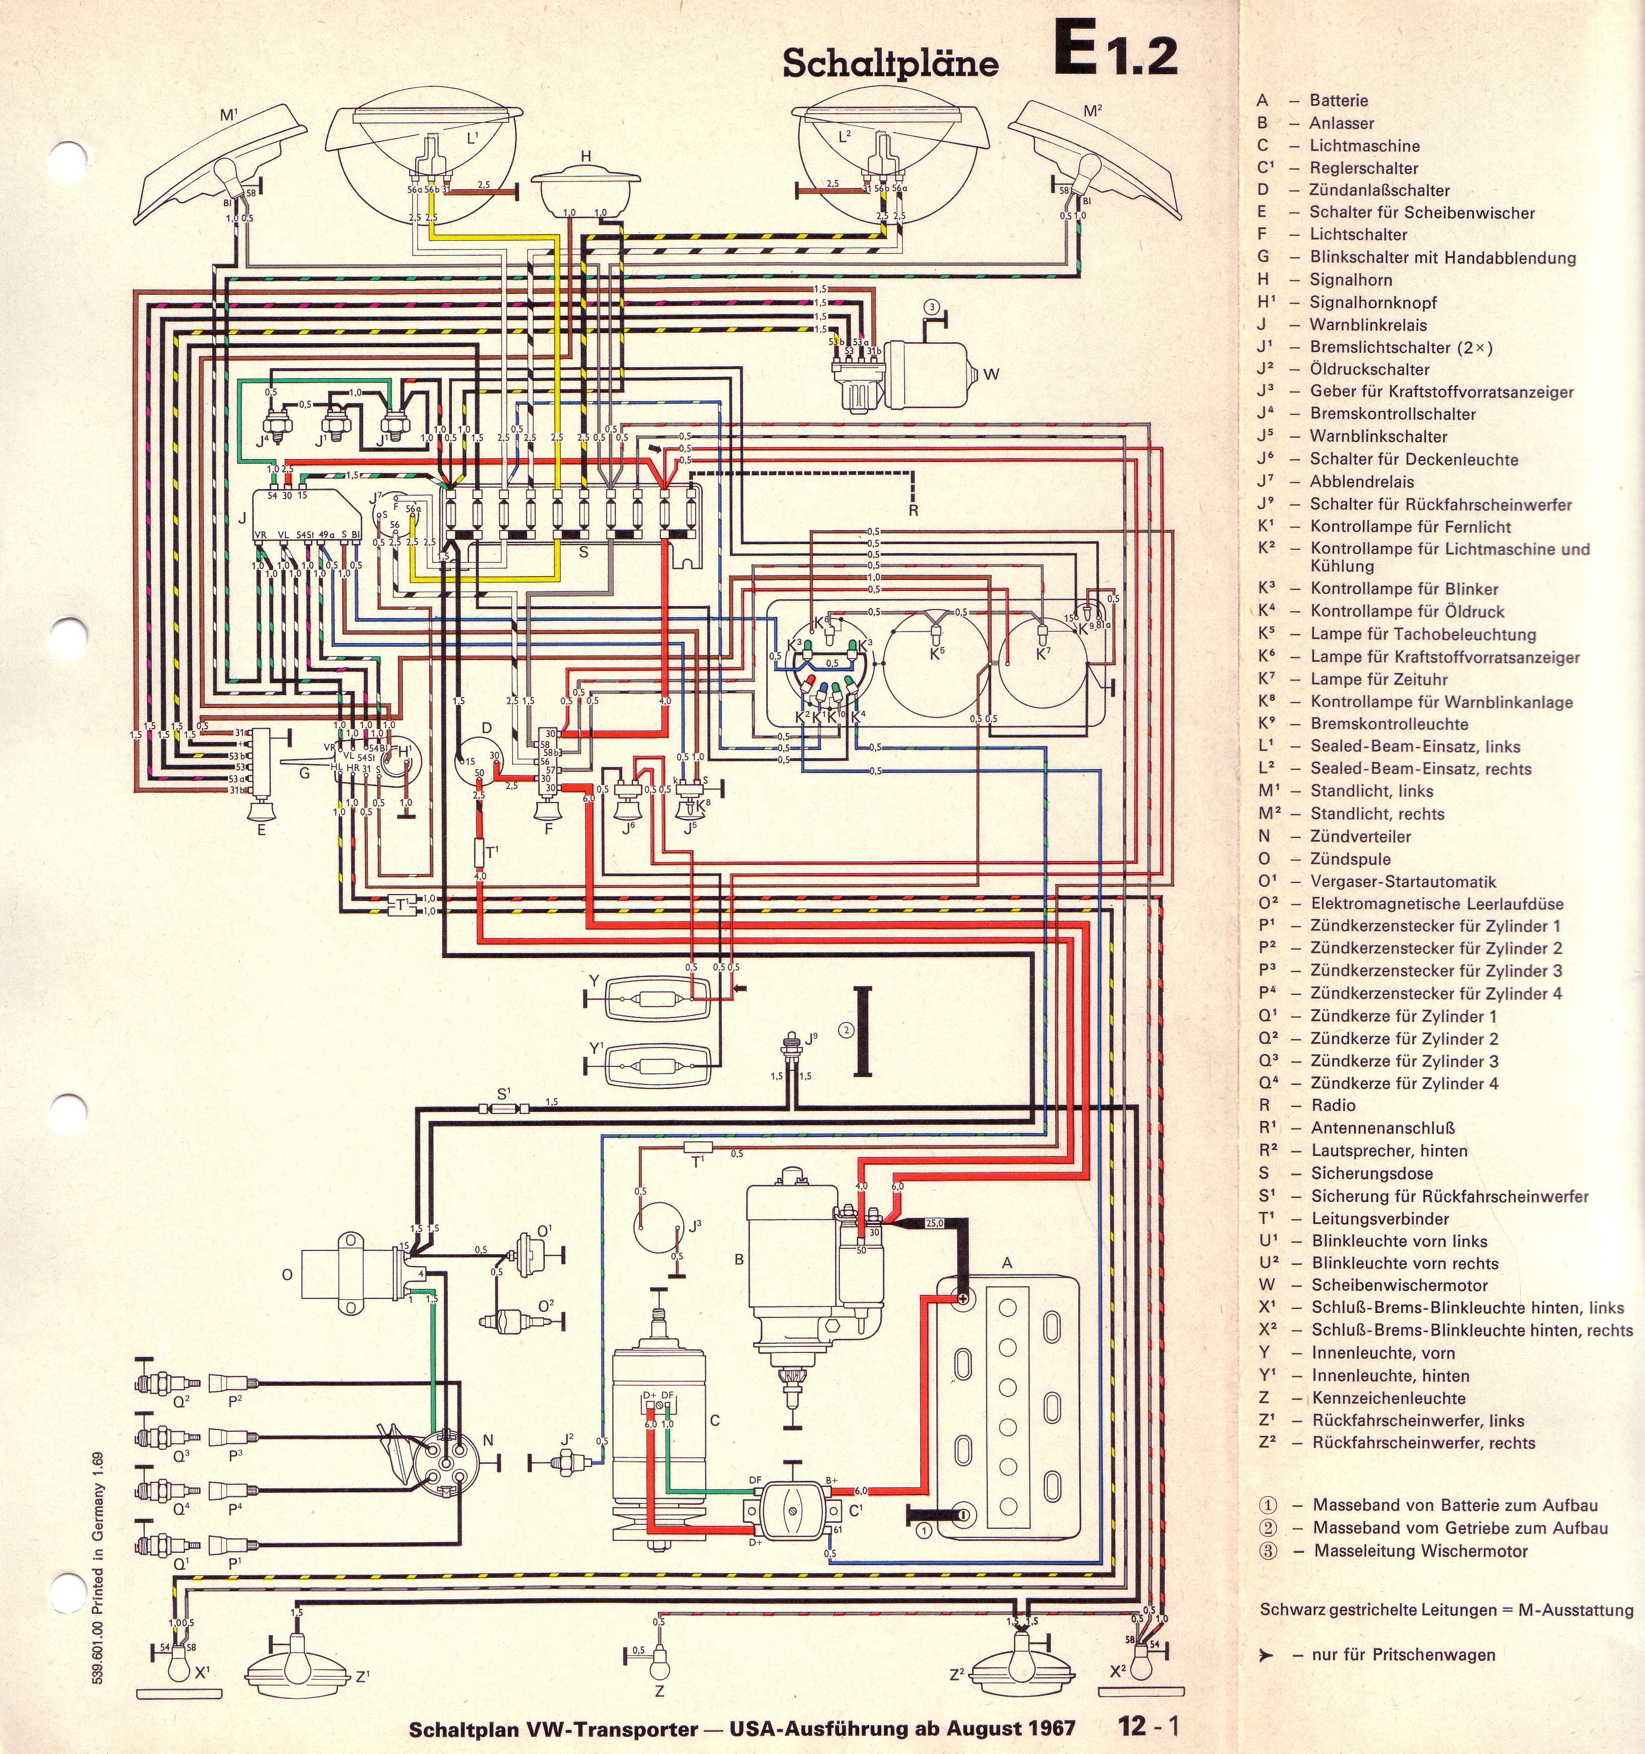 wiring diagram for t1 the wiring diagram vw t1 wiring diagram vw wiring diagrams for car or truck wiring